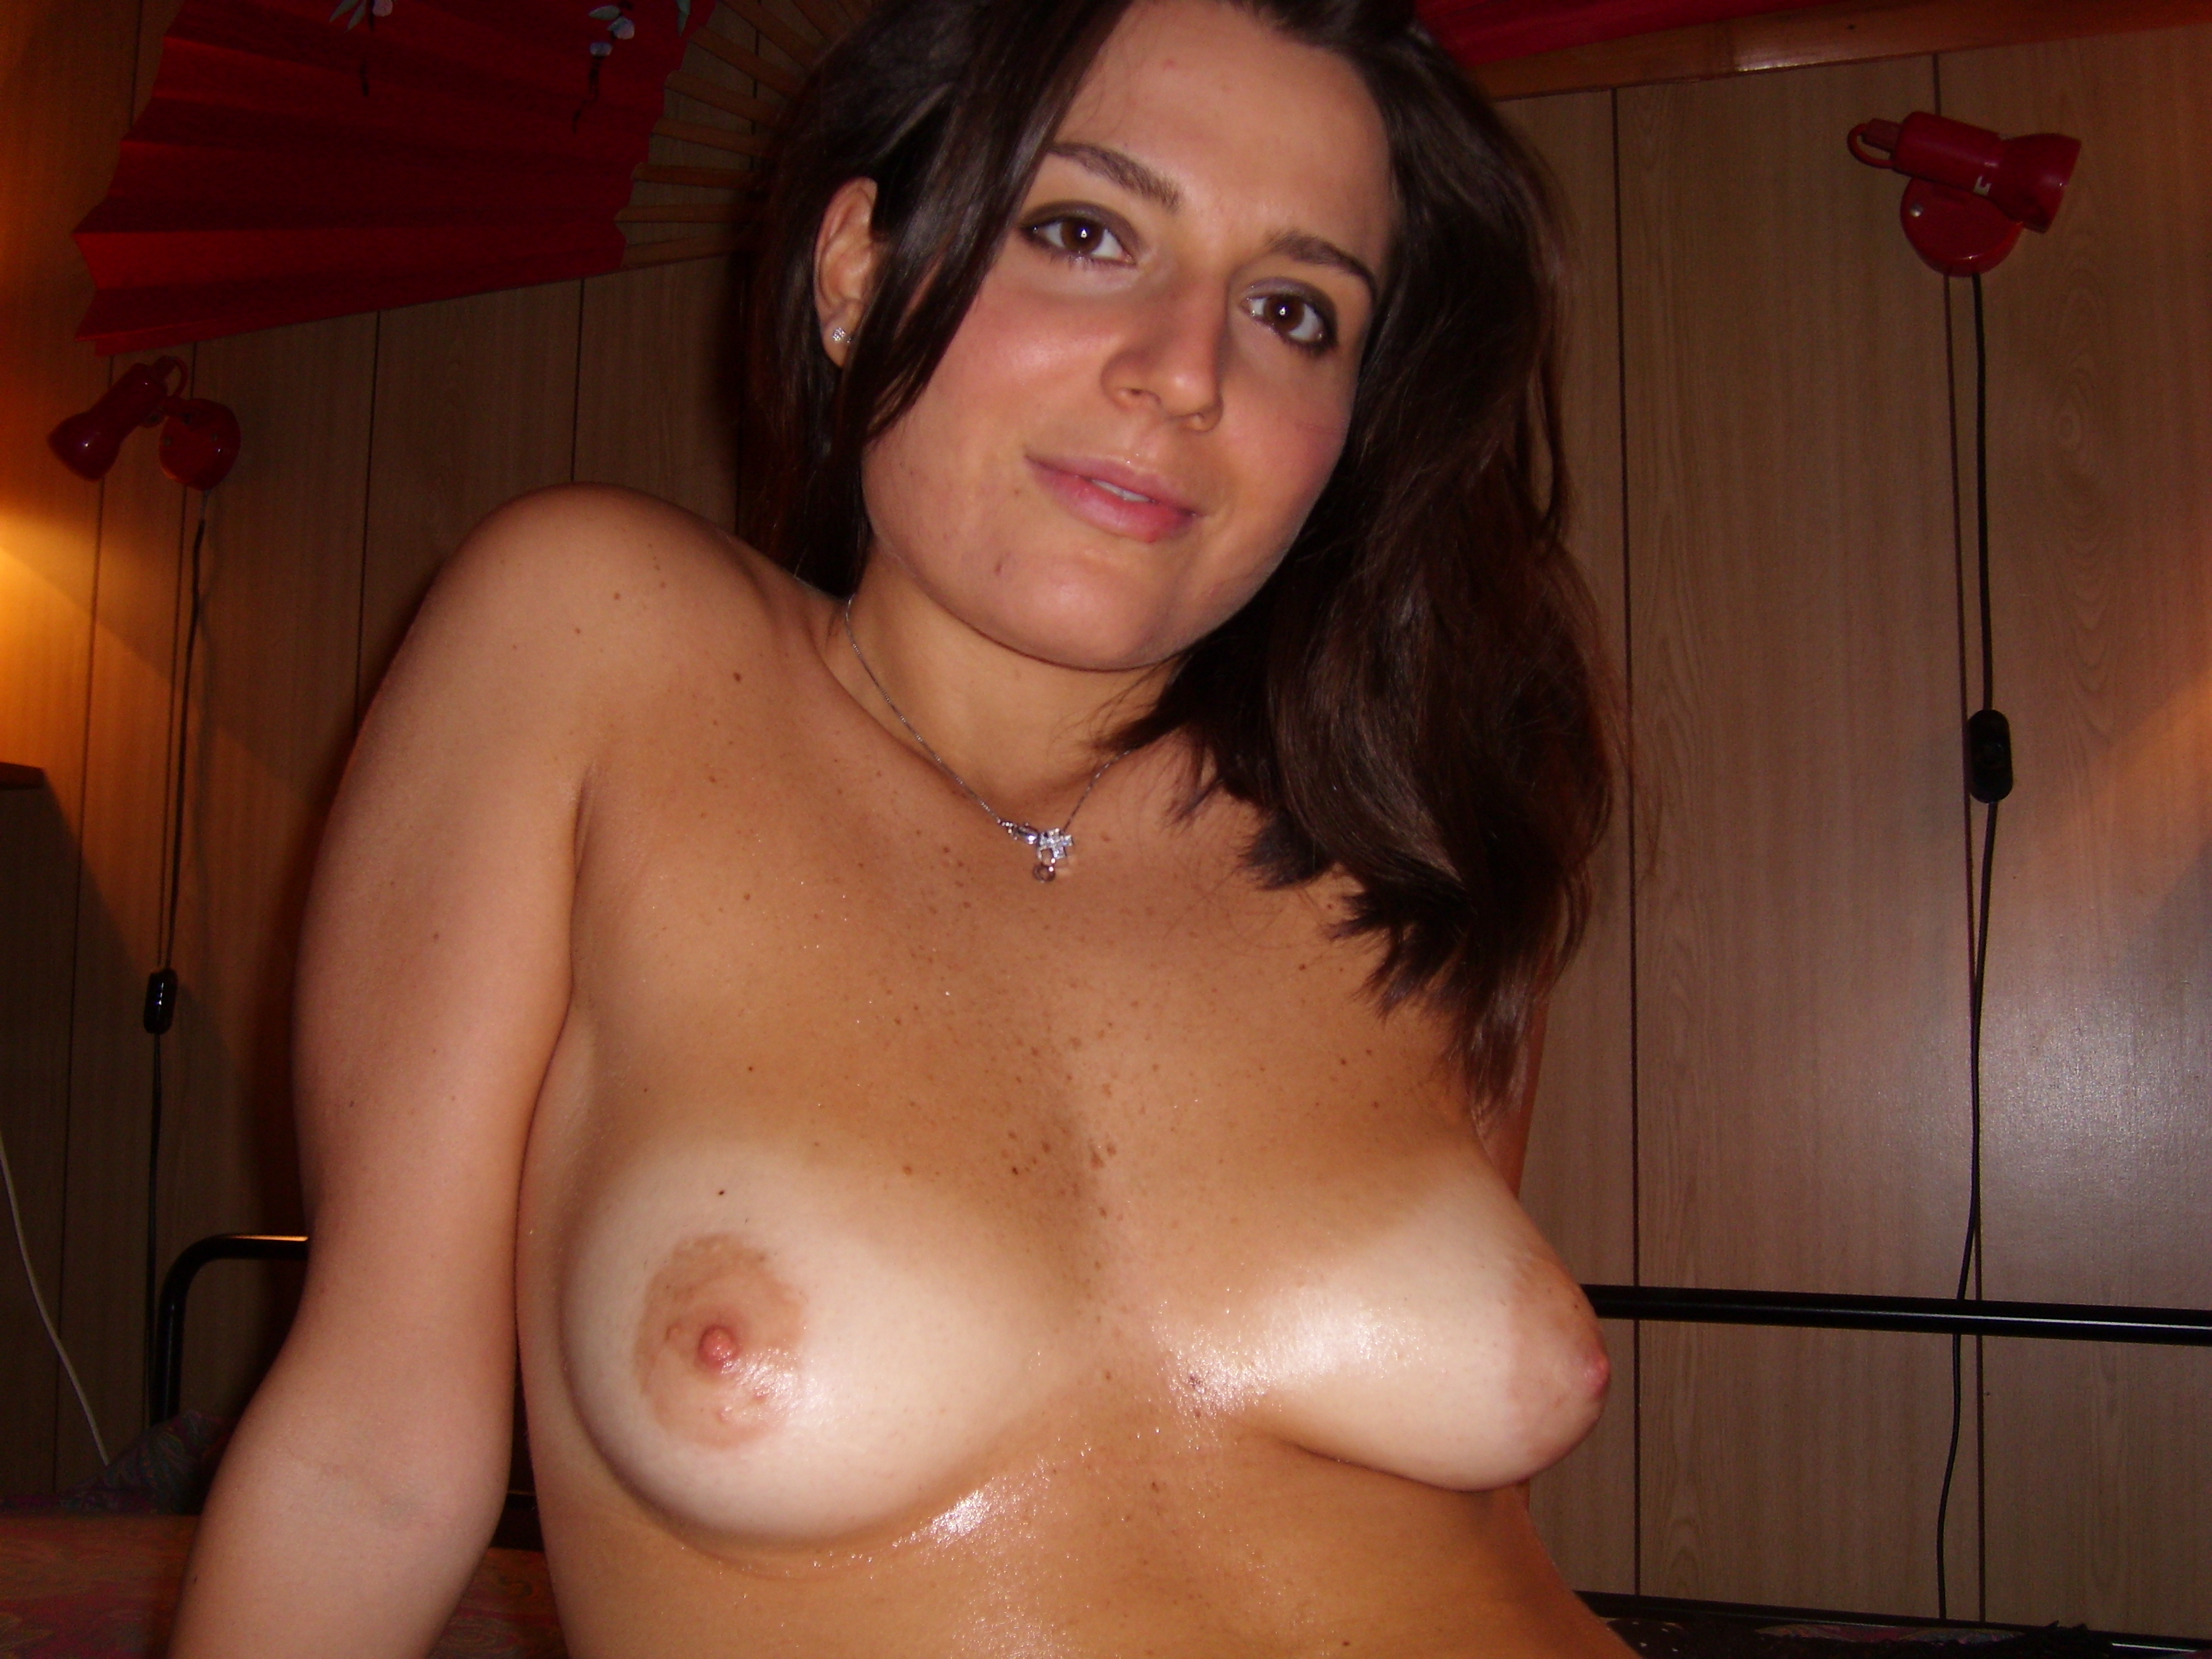 Luscious perscilla pussy pic